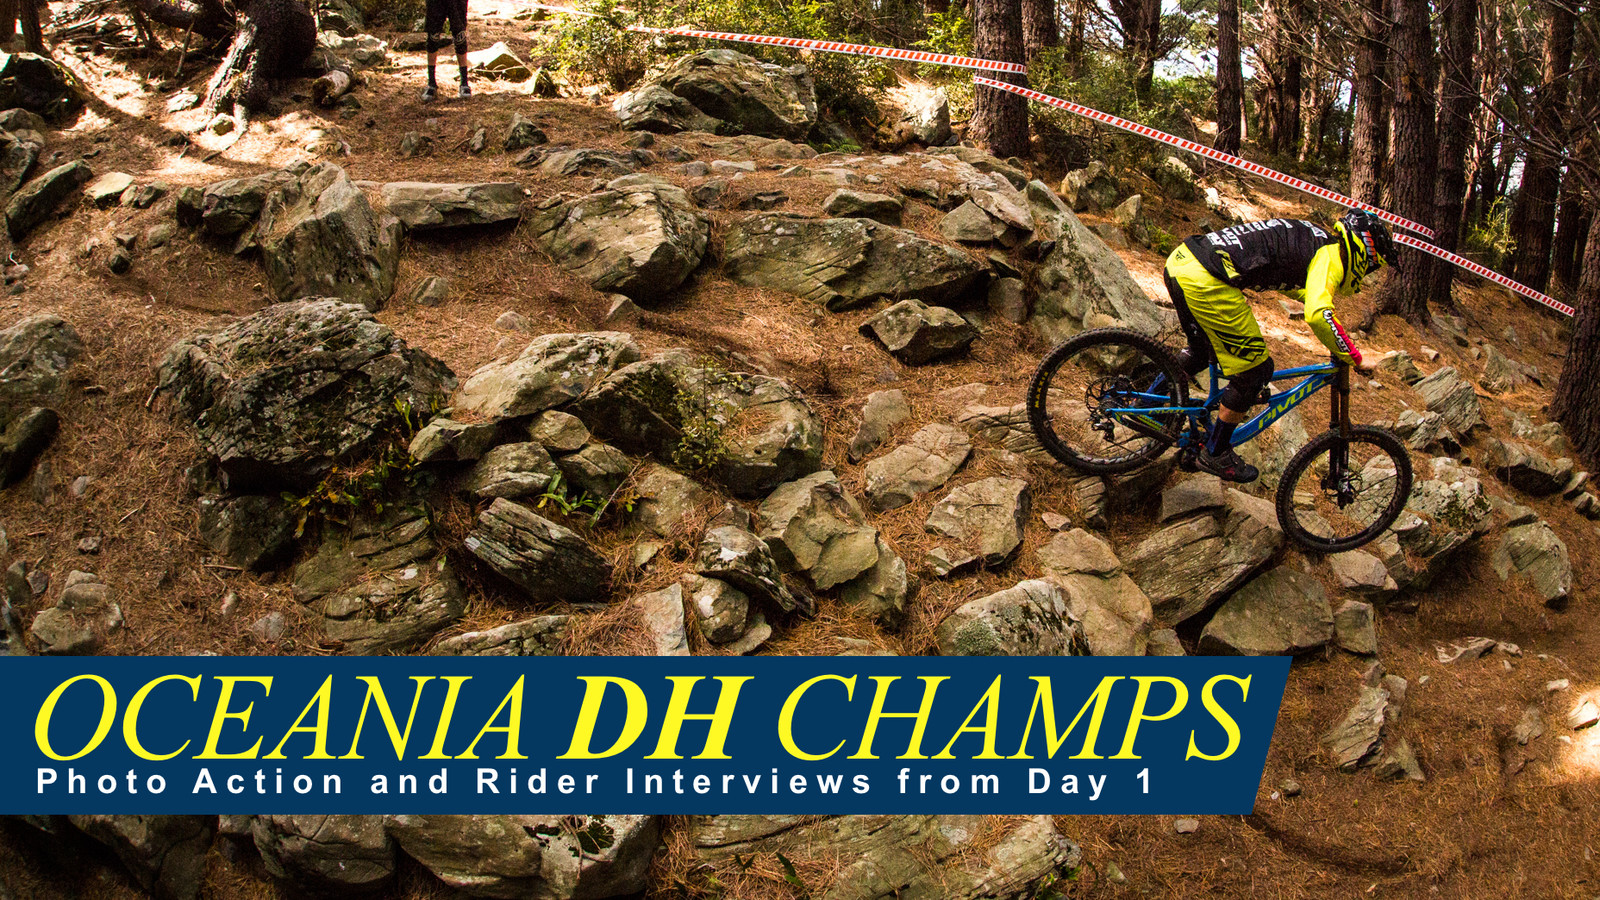 Oceania DH Champs - Photos and Rider Interviews from Day 1